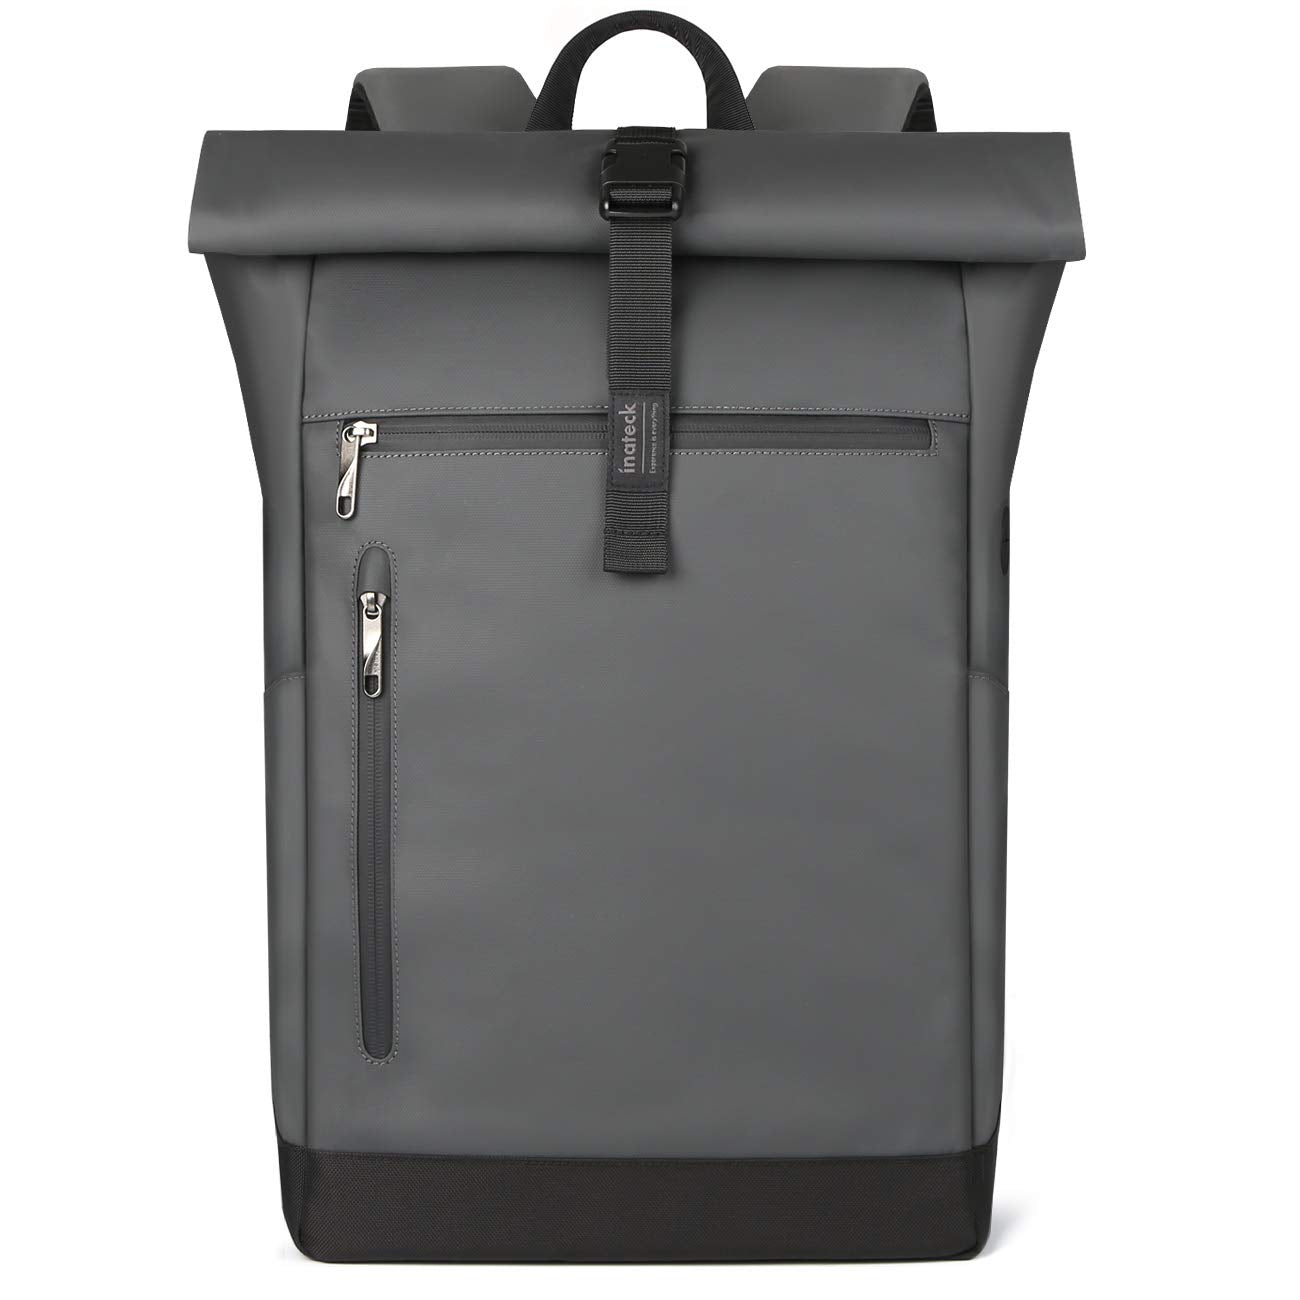 Inateck 17 Inch 25L-30L Roll Top Vintage Laptop Backpack BP01003, Gray